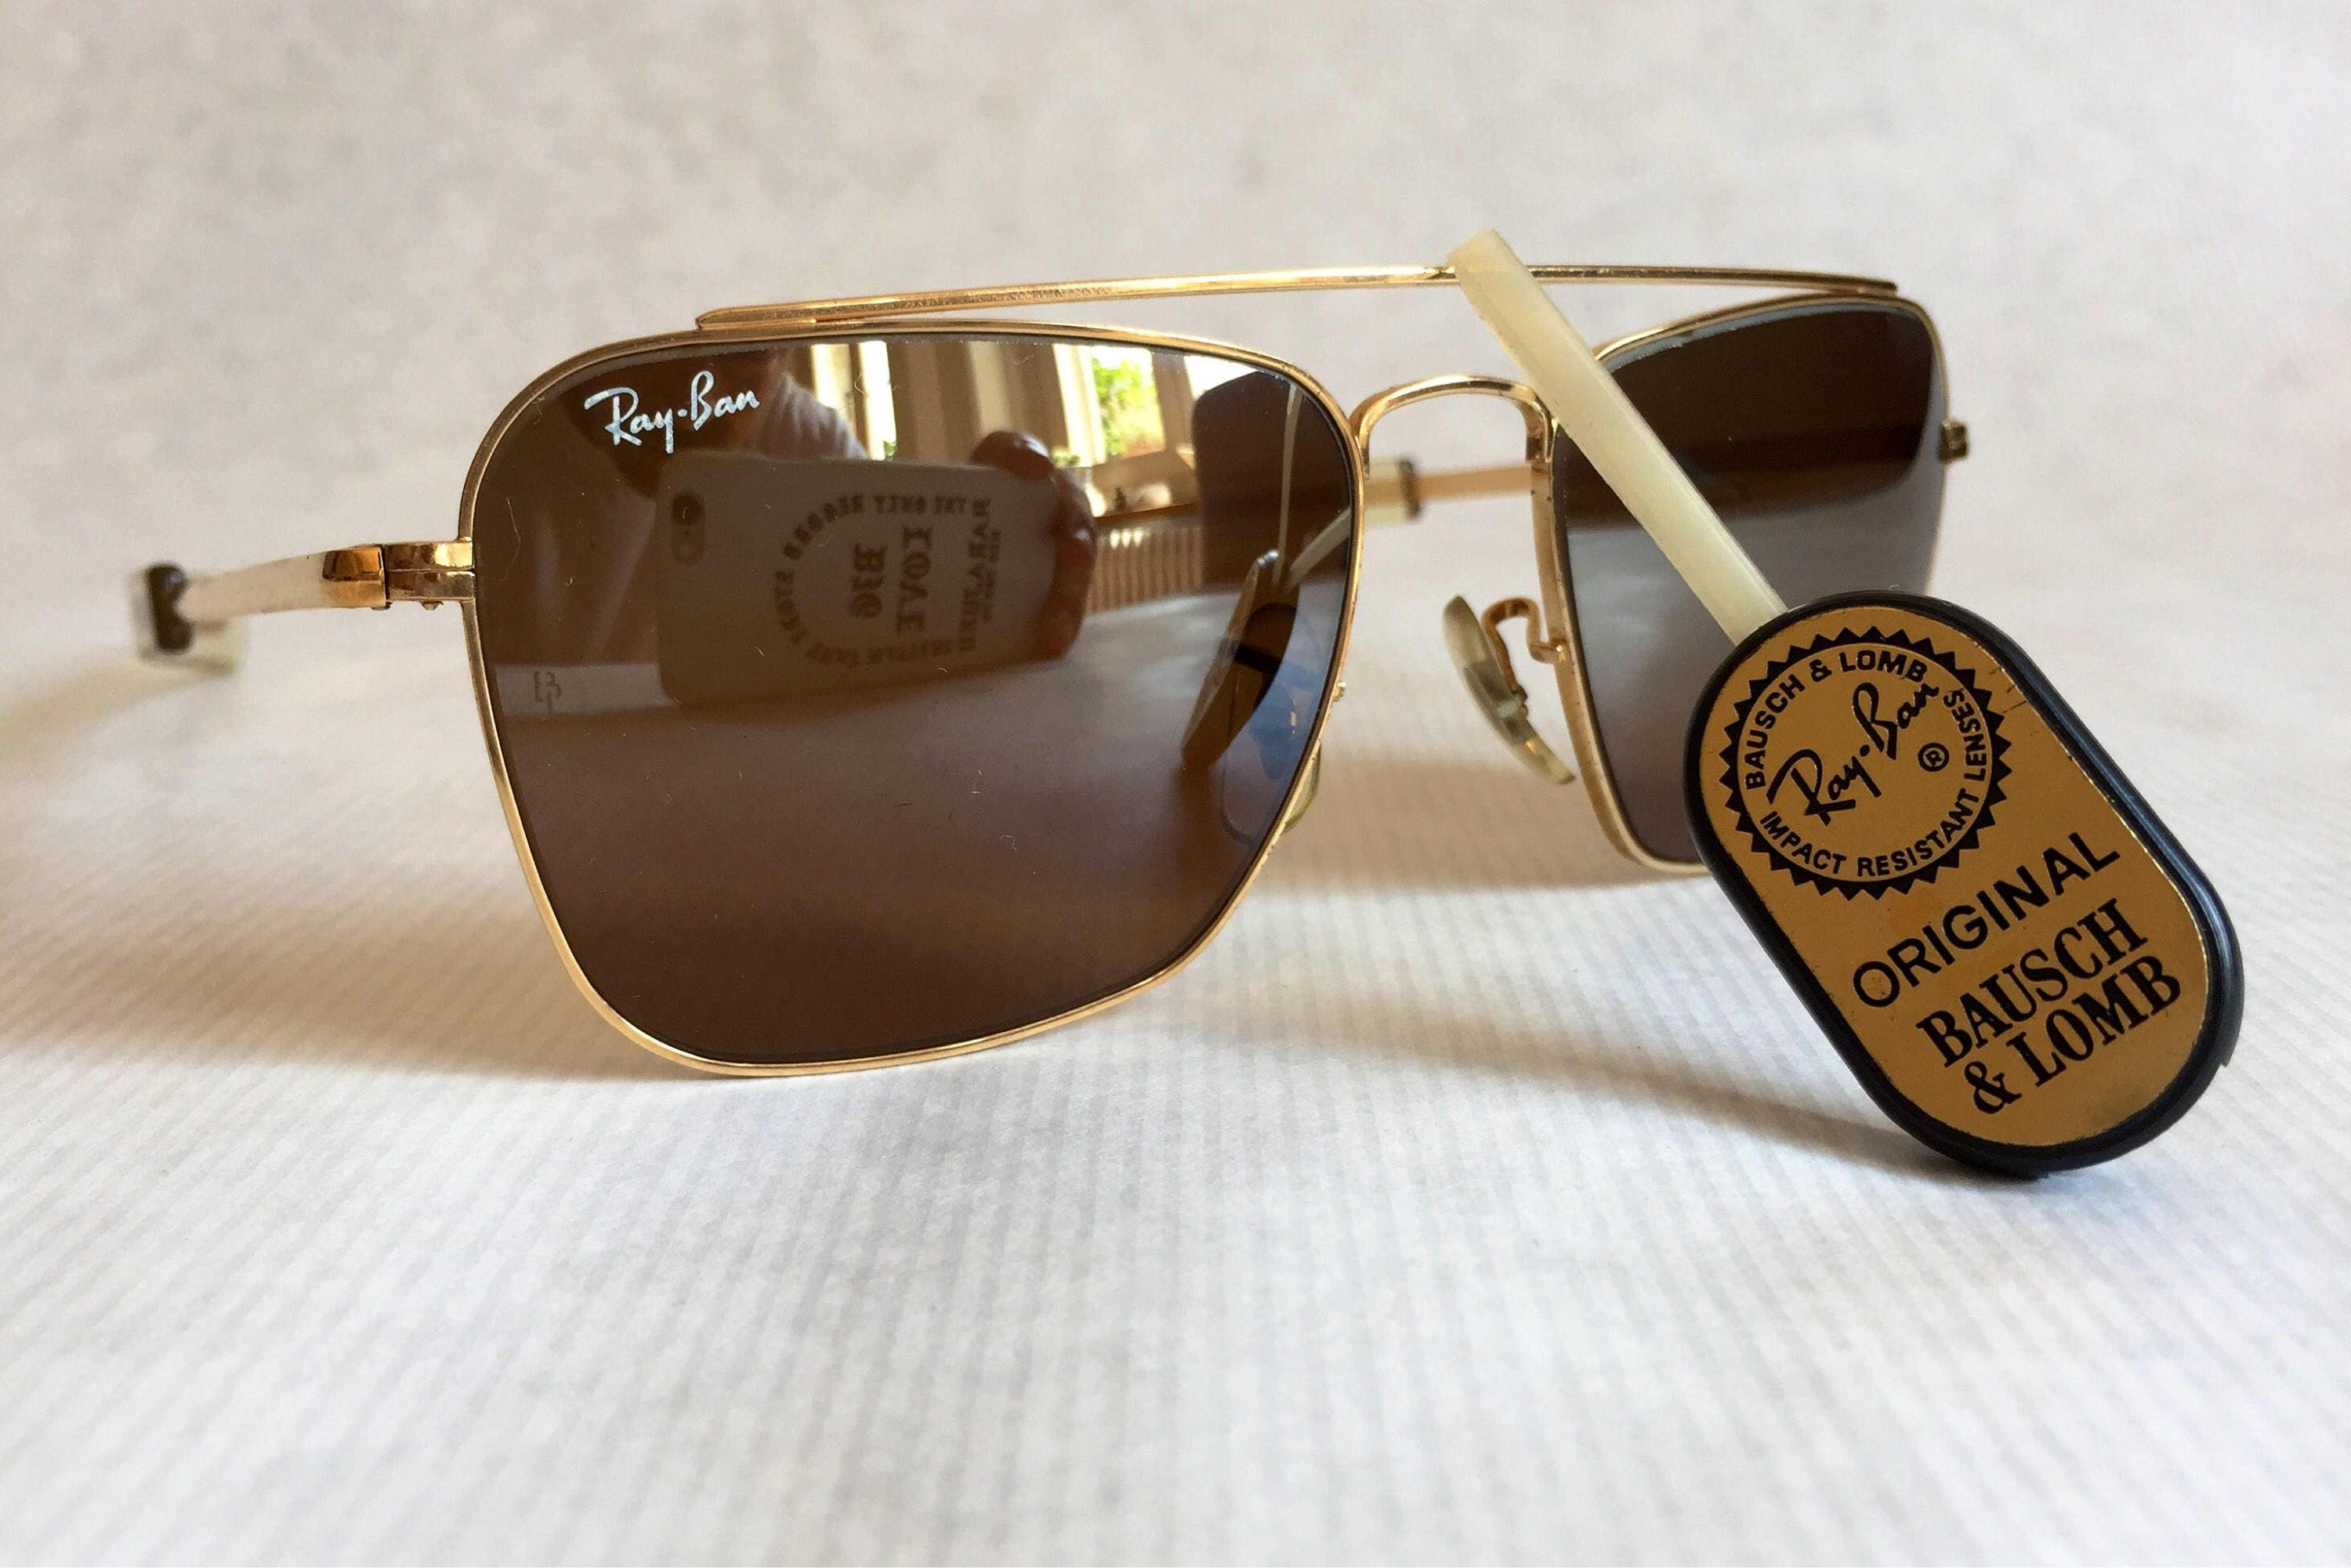 5f682539ca3 Ray-Ban Caravan by Bausch   Lomb Vintage Sunglasses including ...